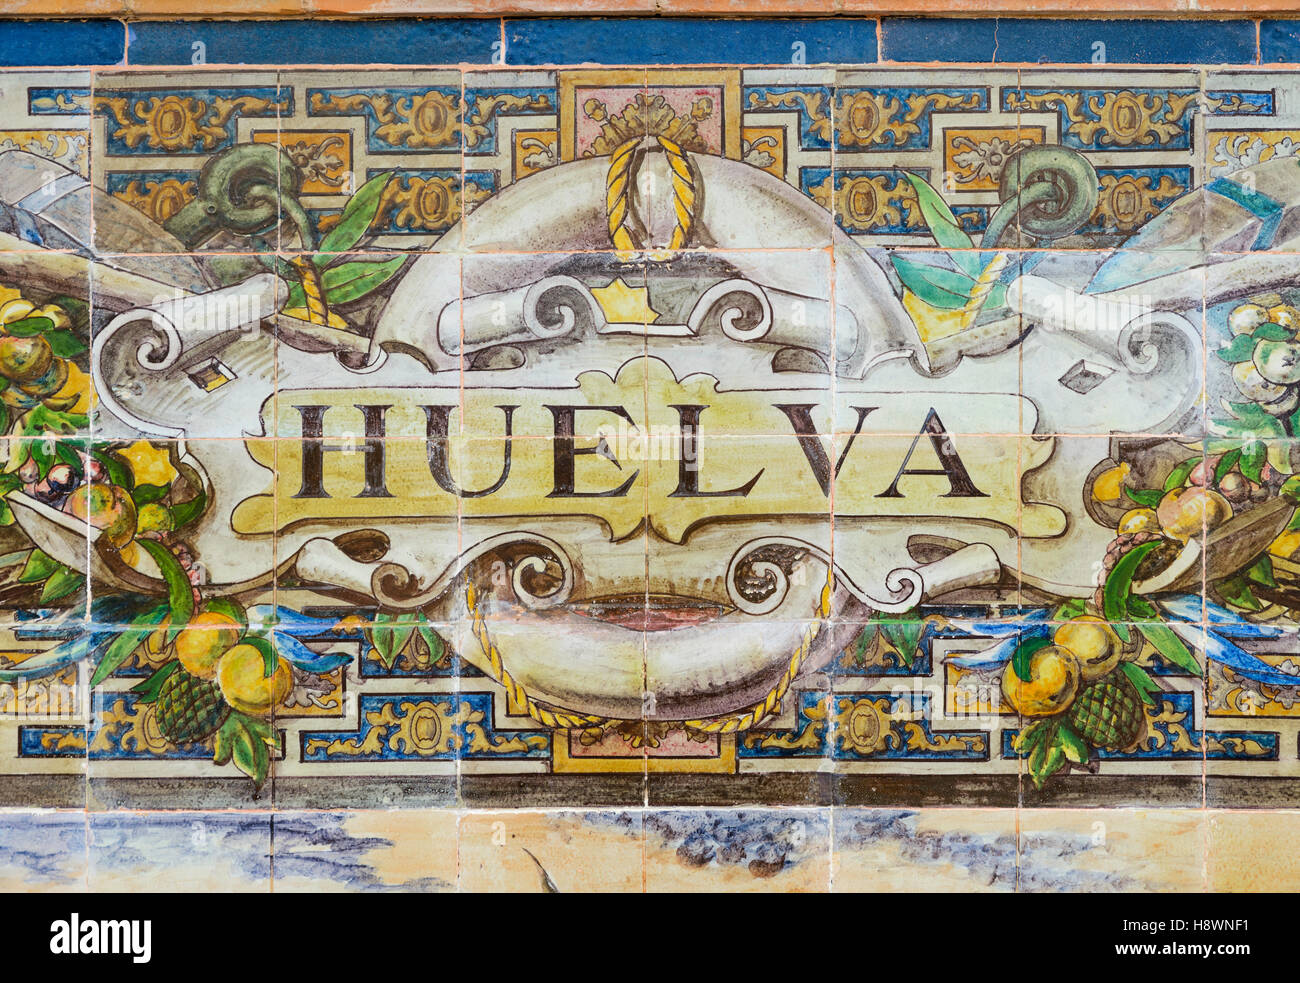 Detail from the tiled bench dedicated to Huelva at  the Plaza de Espana Seville Andalusia Spain - Stock Image